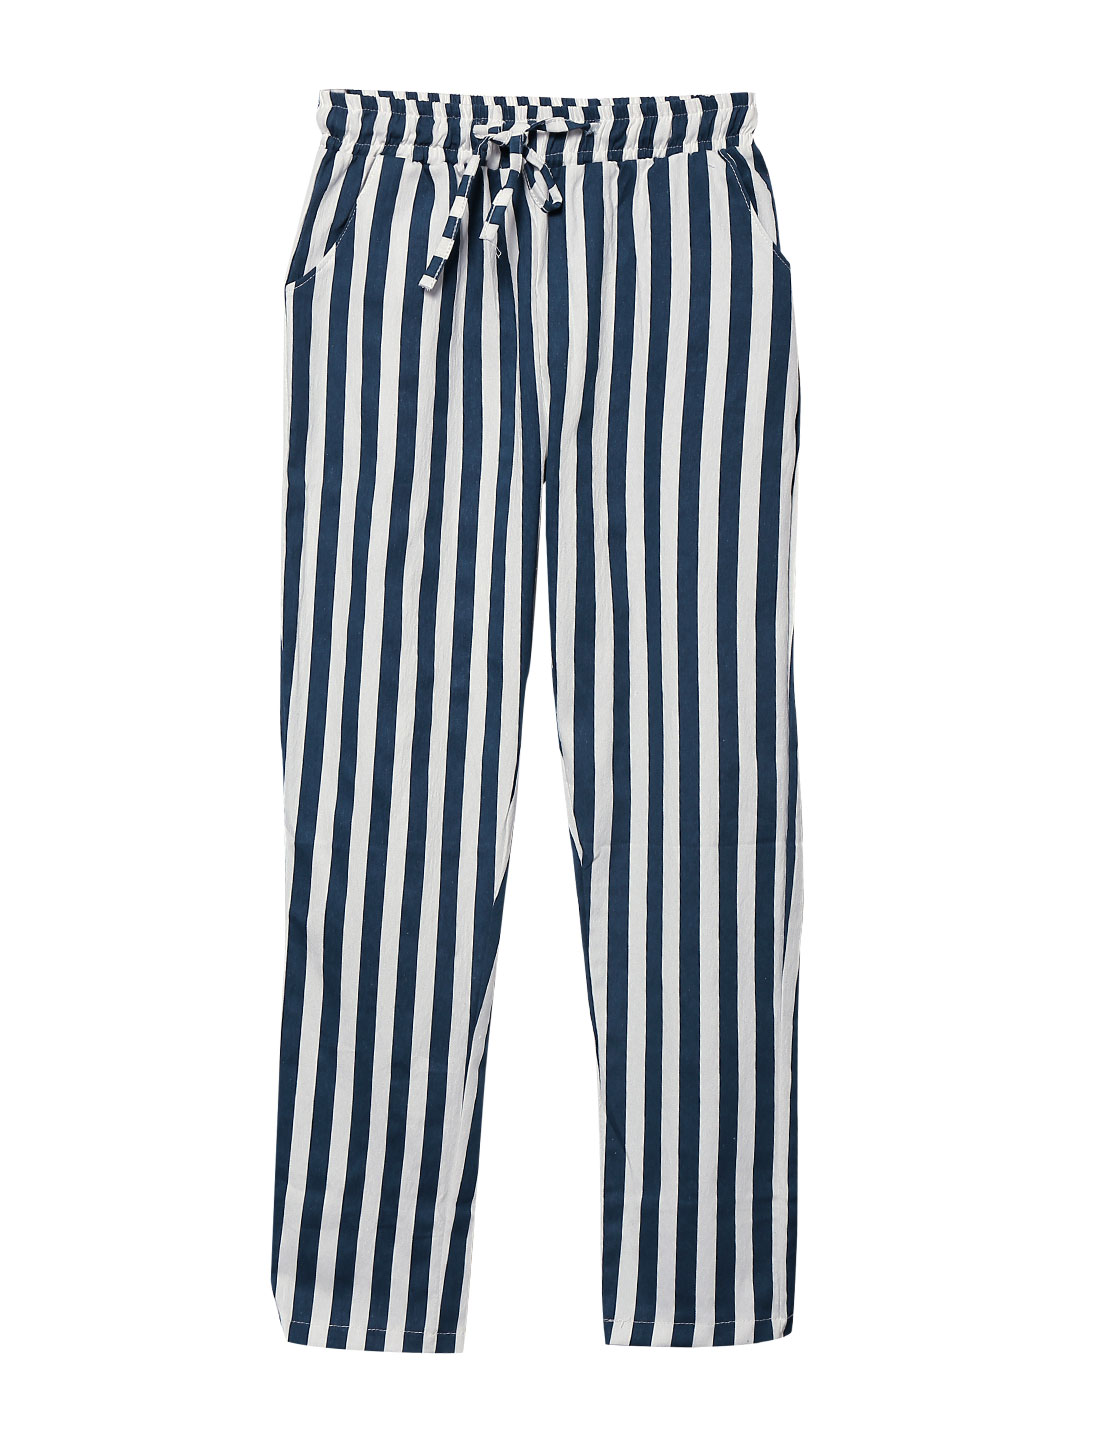 Women Stripes Drawstring Waist Slant Pockets Casual Pants Navy Blue White XS